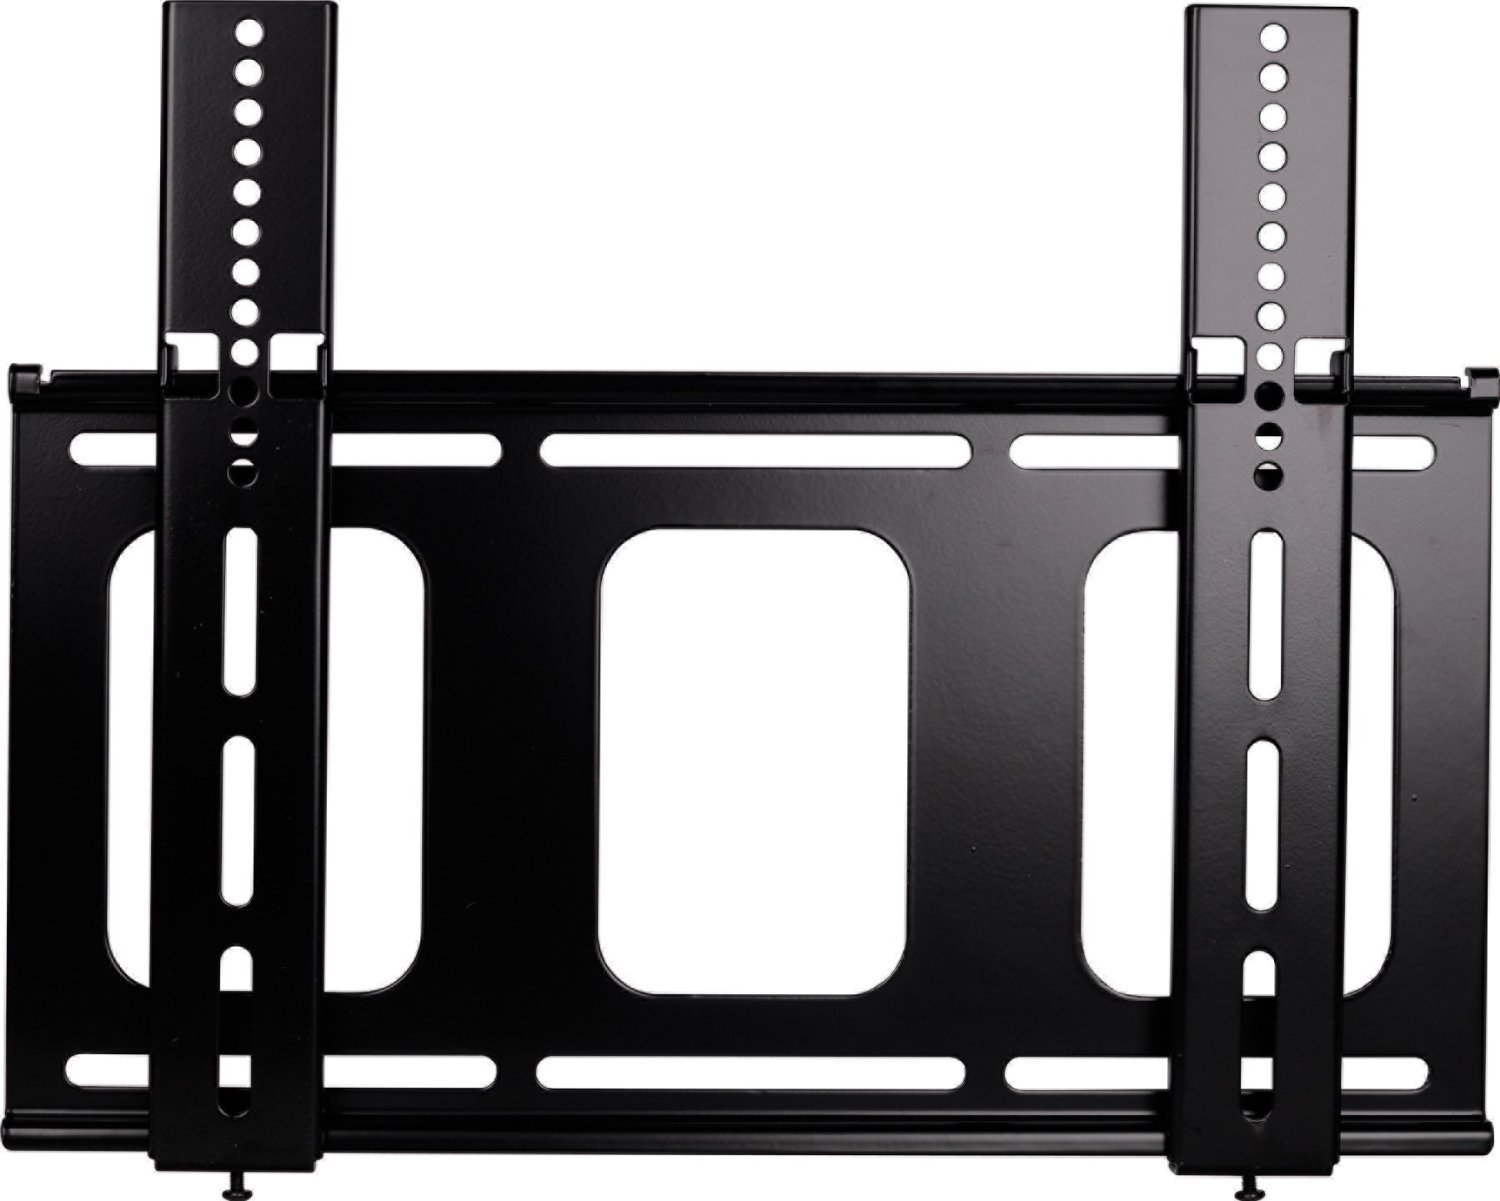 高級ブランド VMP LCD-MID-FB B01C79CSKQ Universal Displays Mid-Size Flat to Panel Flush Mount for 27 to 42-Inch Displays (Black) [並行輸入品] B01C79CSKQ, エフ スリーズィー:63cbb31a --- a0267596.xsph.ru